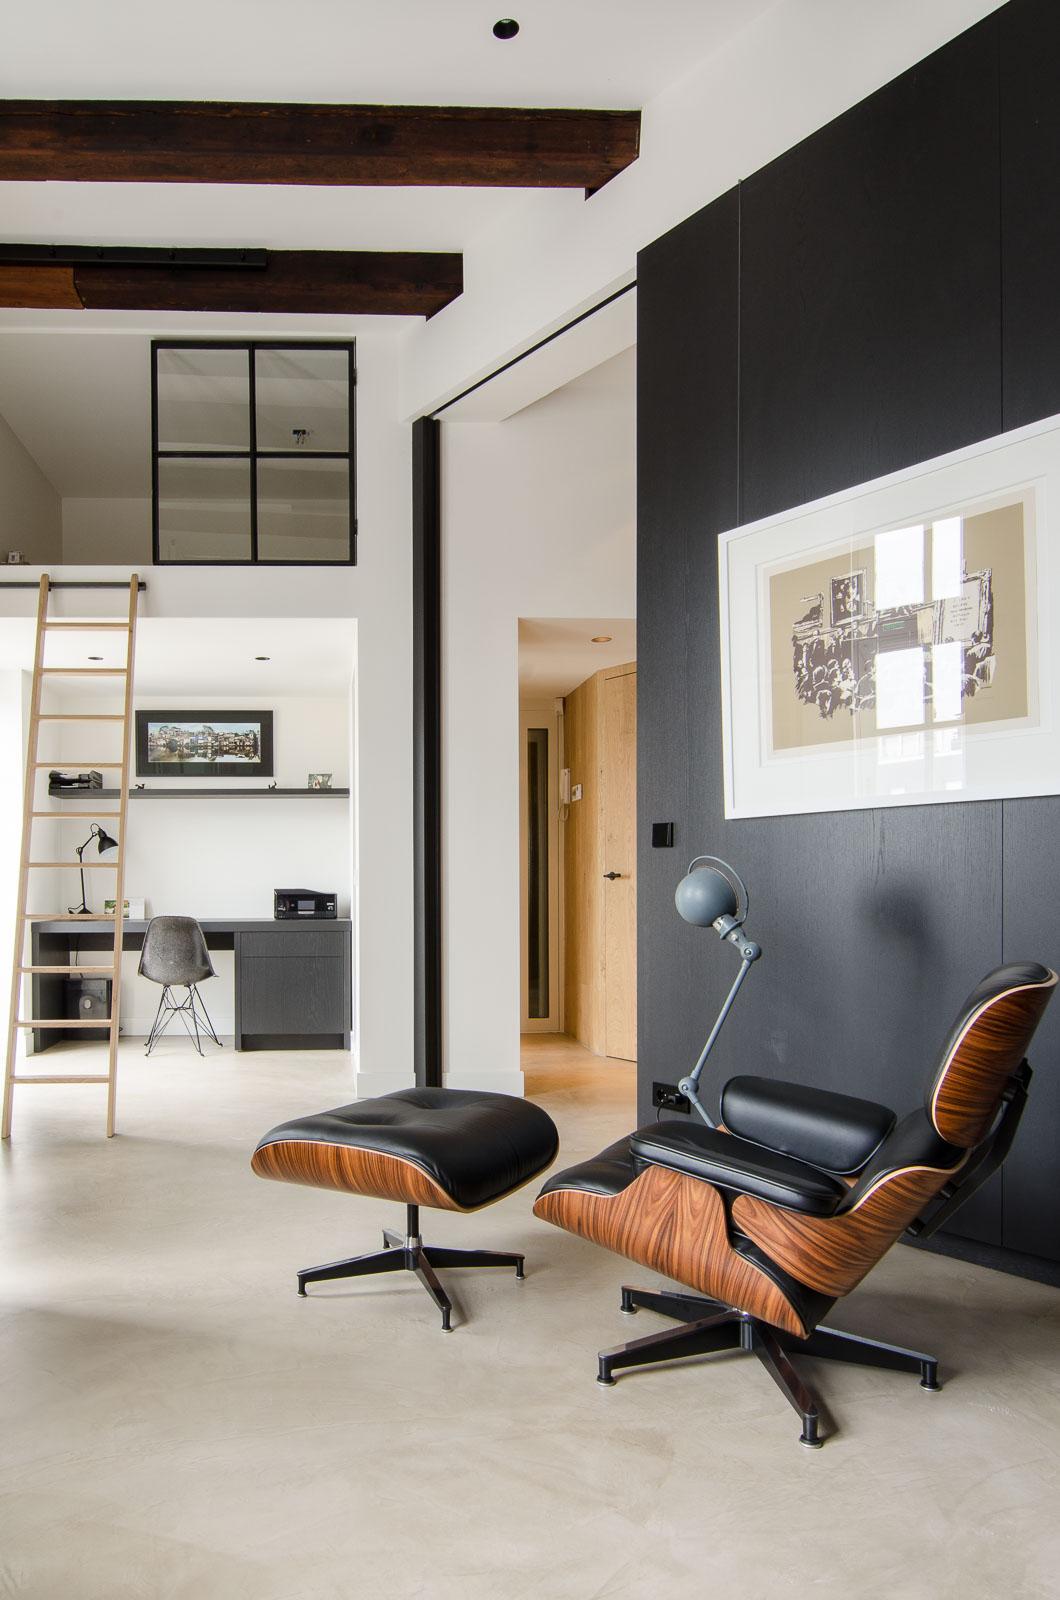 Amsterdam loft with Eames lounge chair